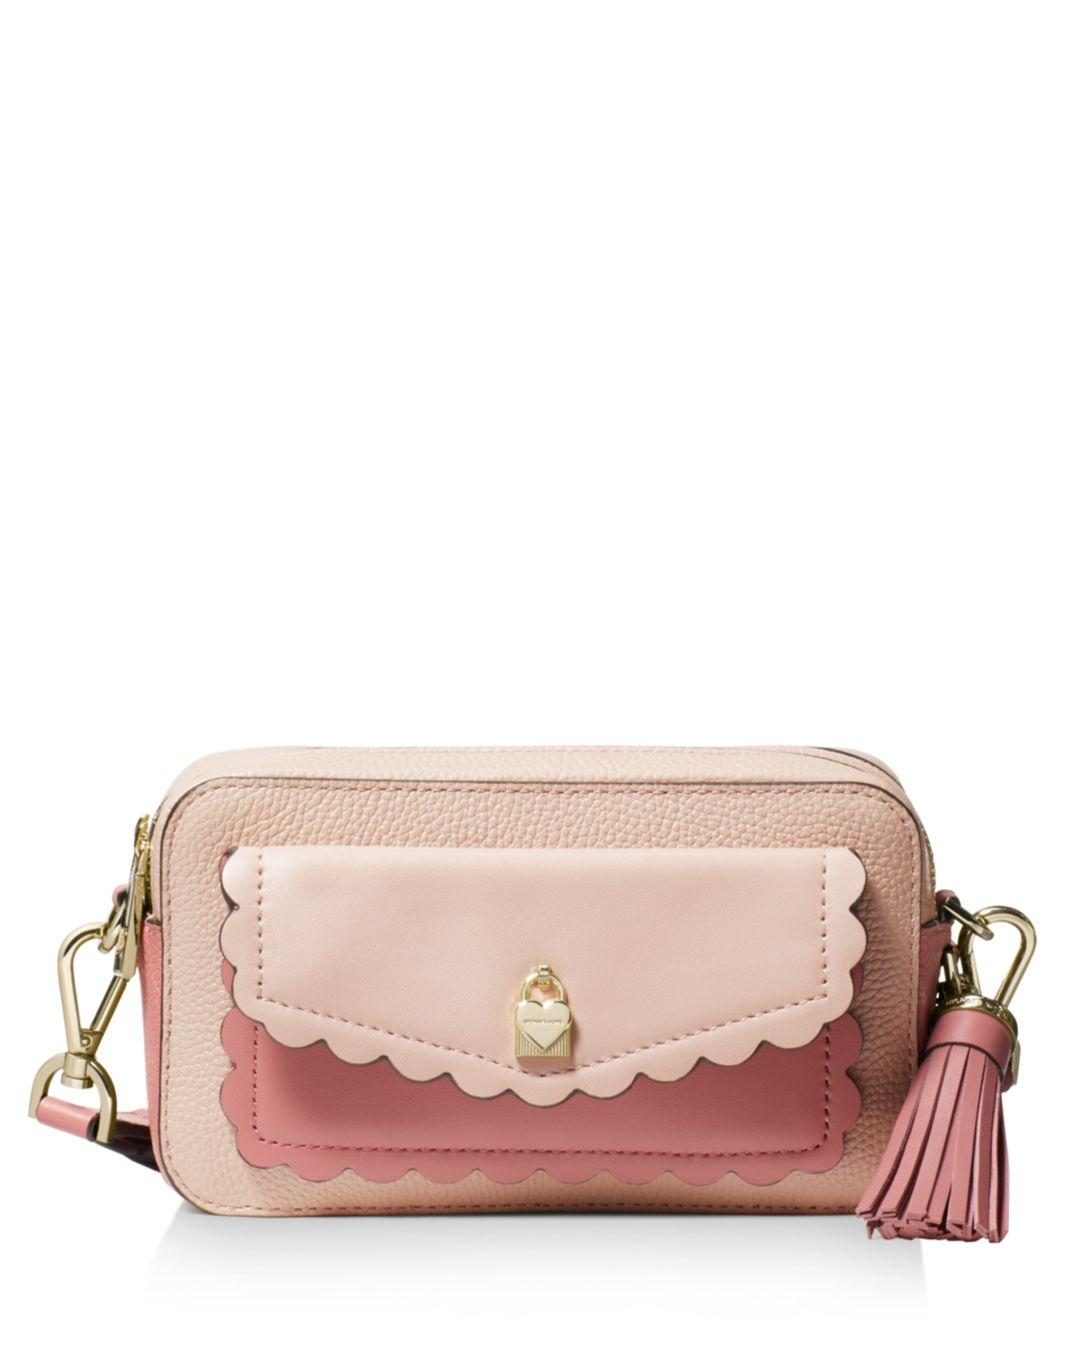 83223100c4dd MICHAEL Michael Kors Small Leather Crossbody Camera Bag in Pink ...